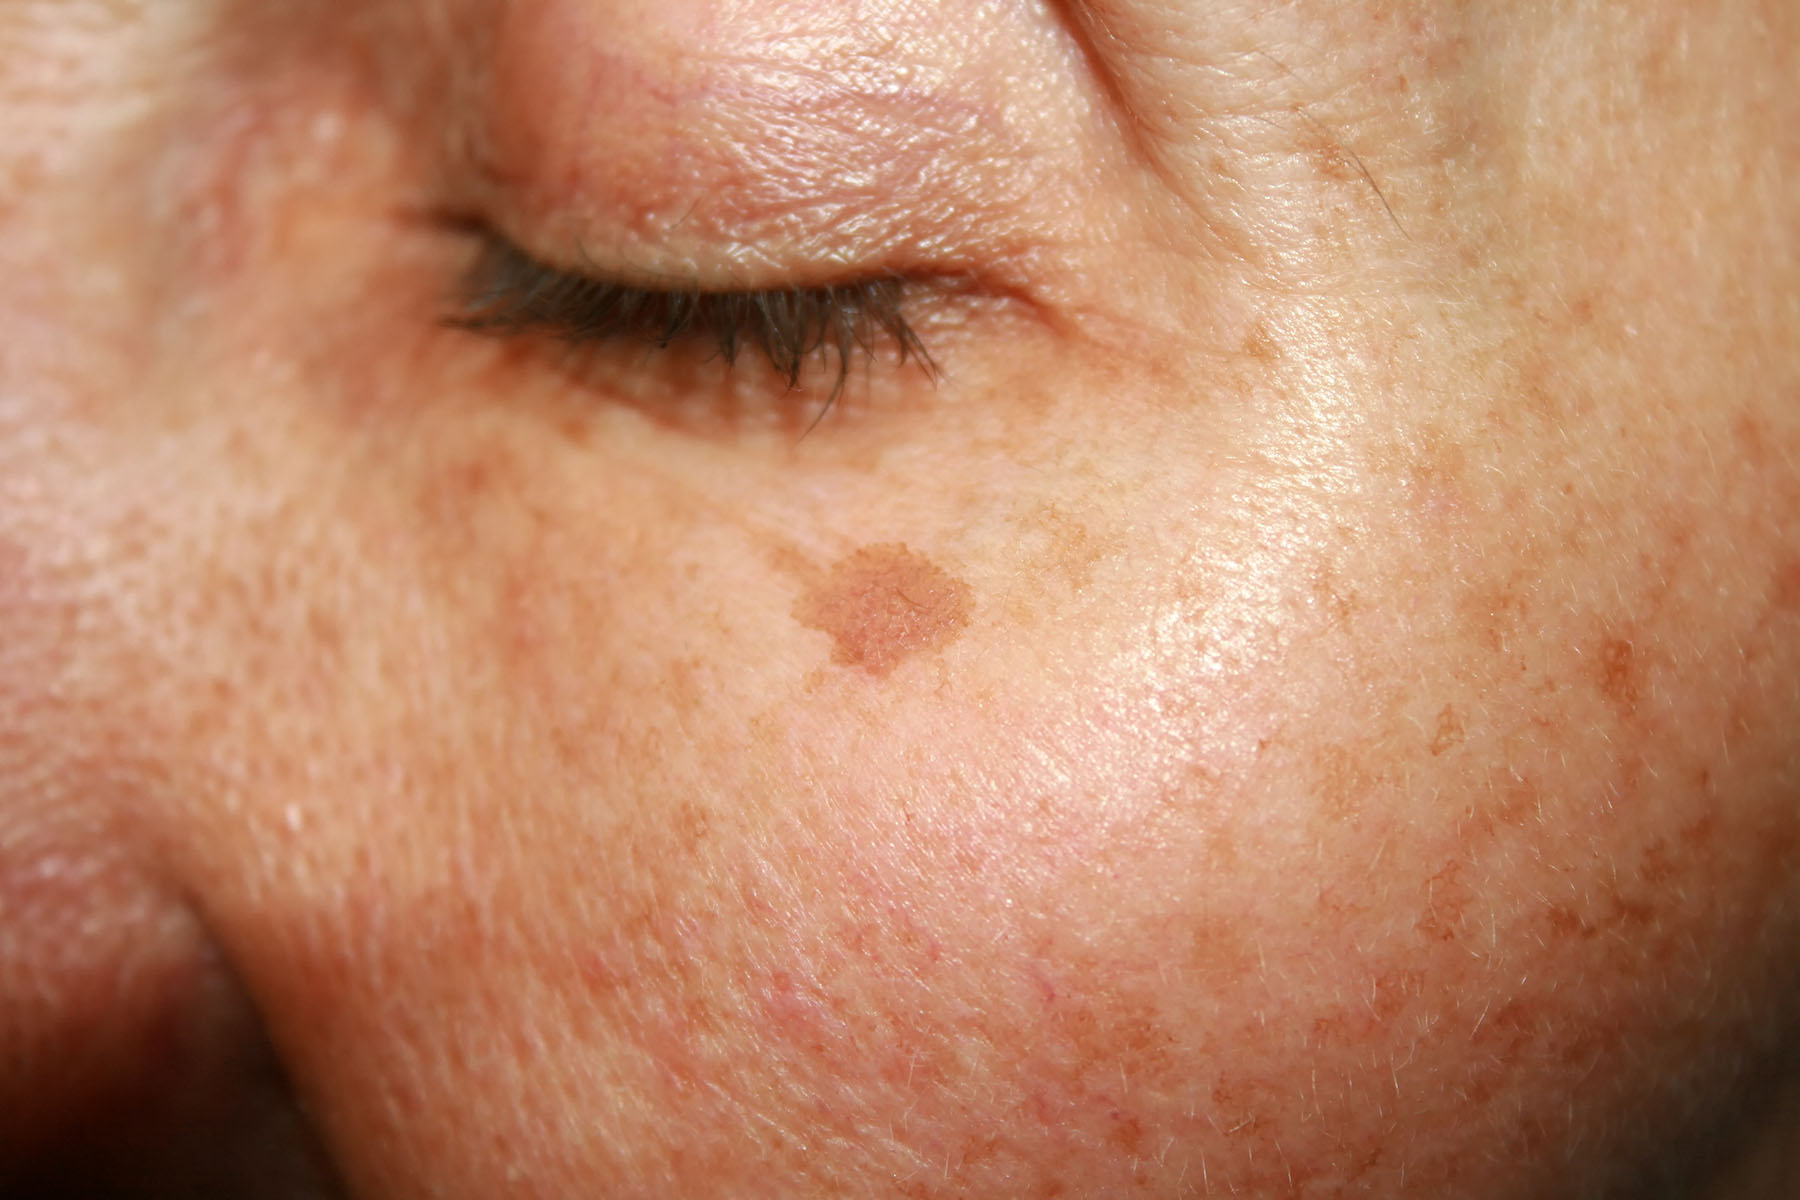 An example of what an age/sun/liver spot looks like on a face.